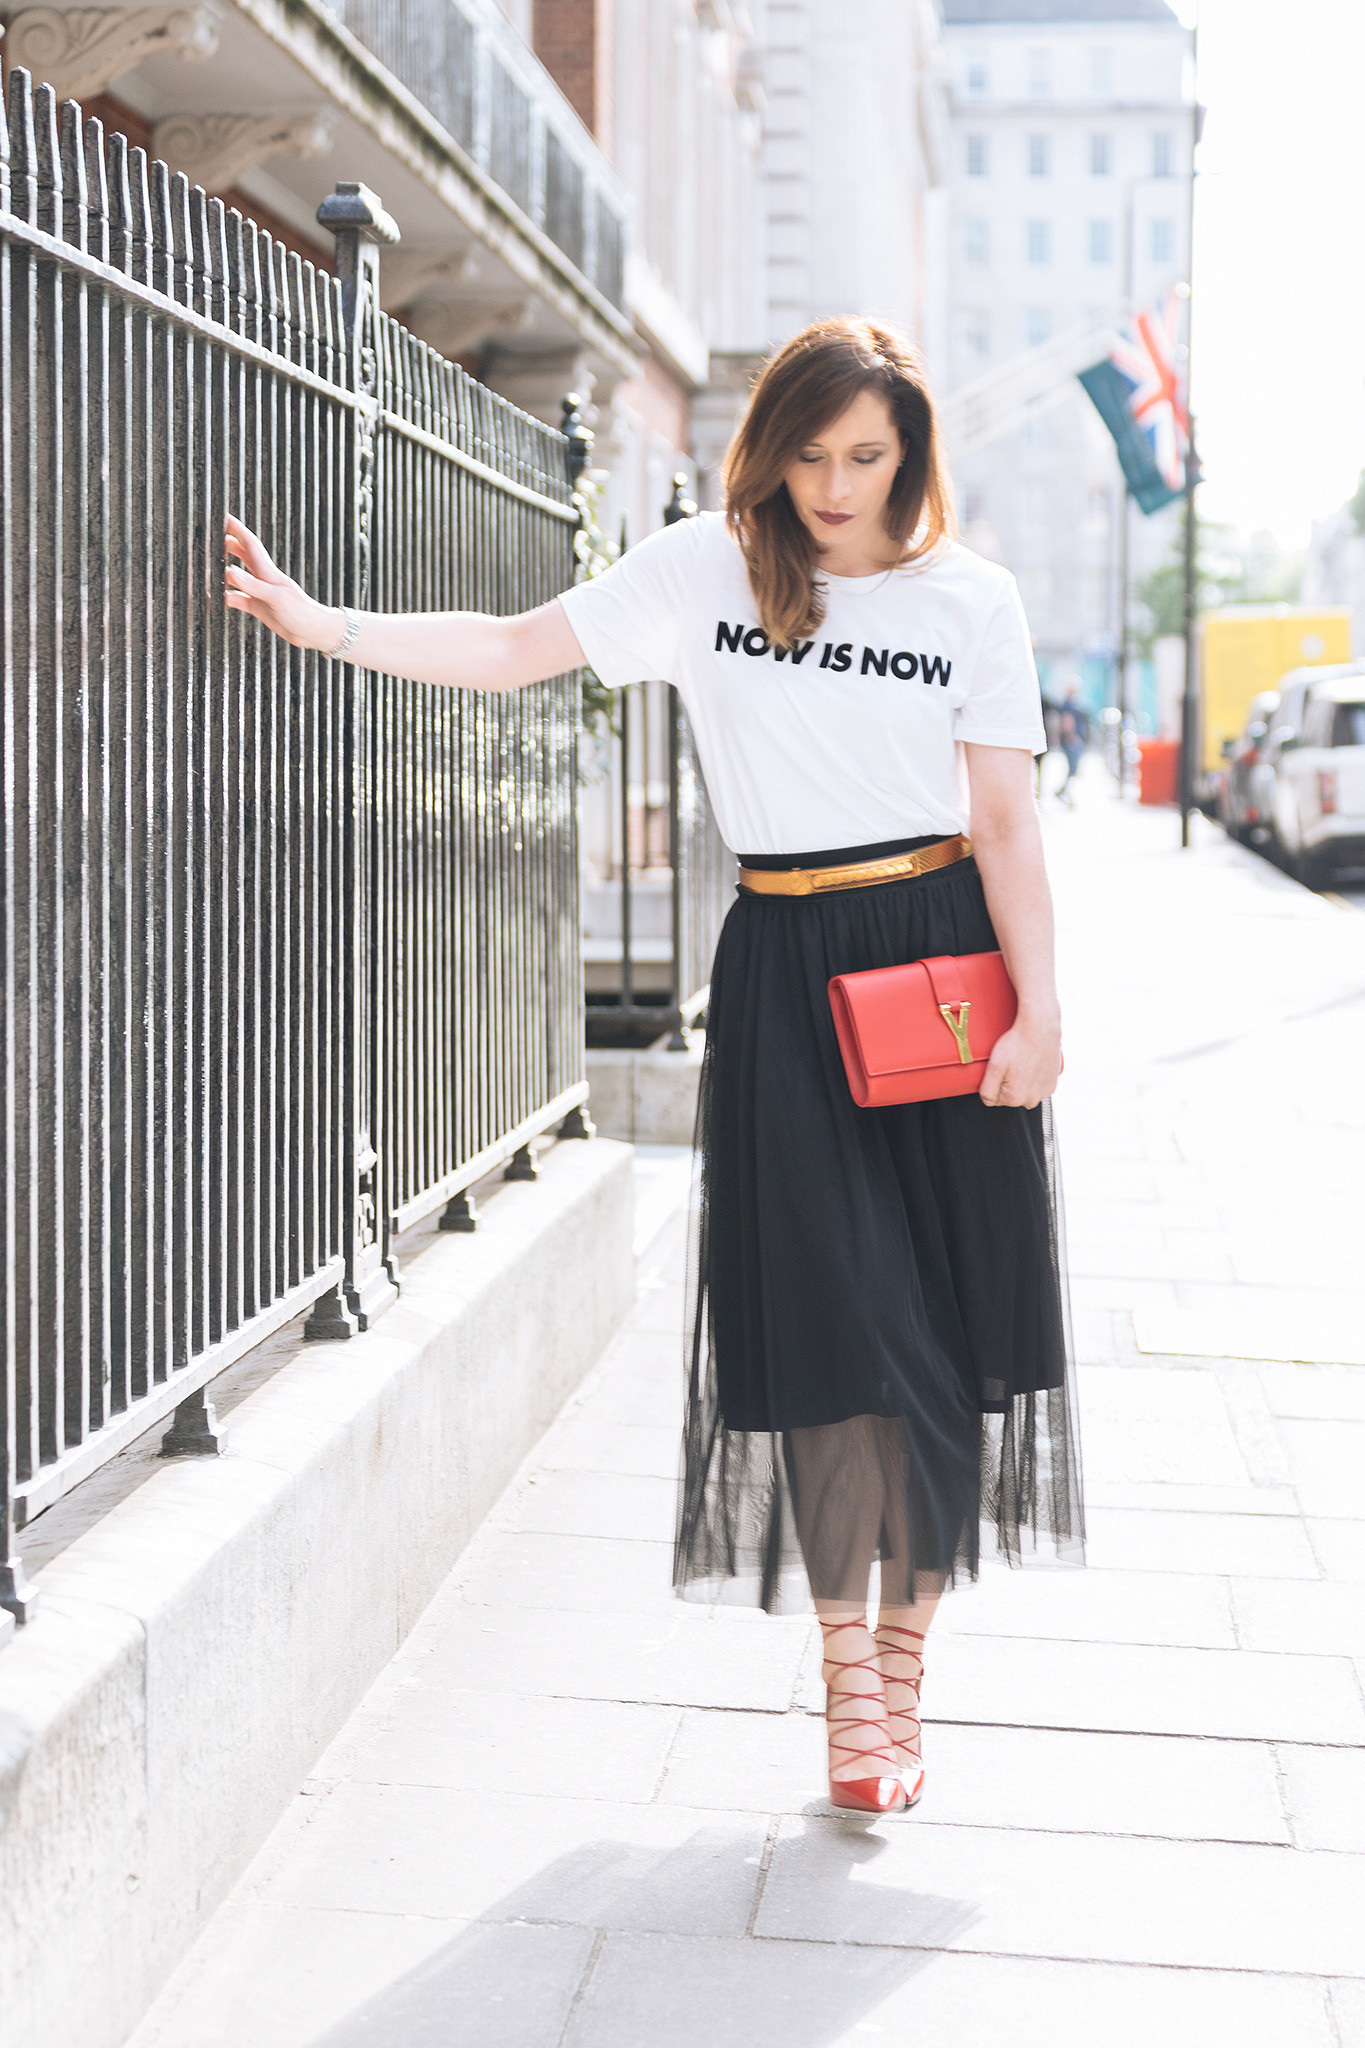 How to wear tulle skirt and look stylish